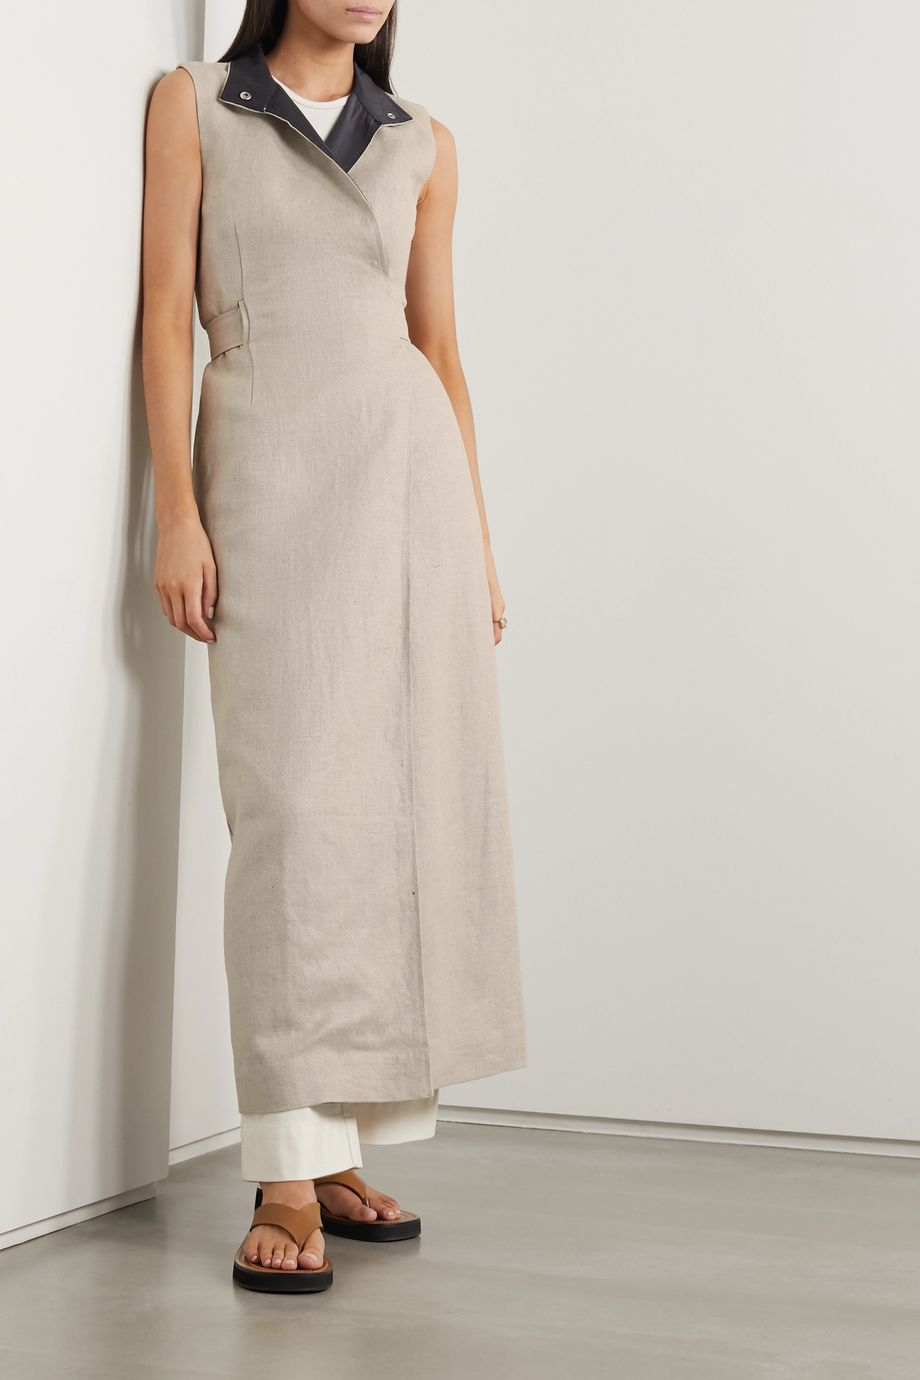 GANNI Belted linen wrap dress